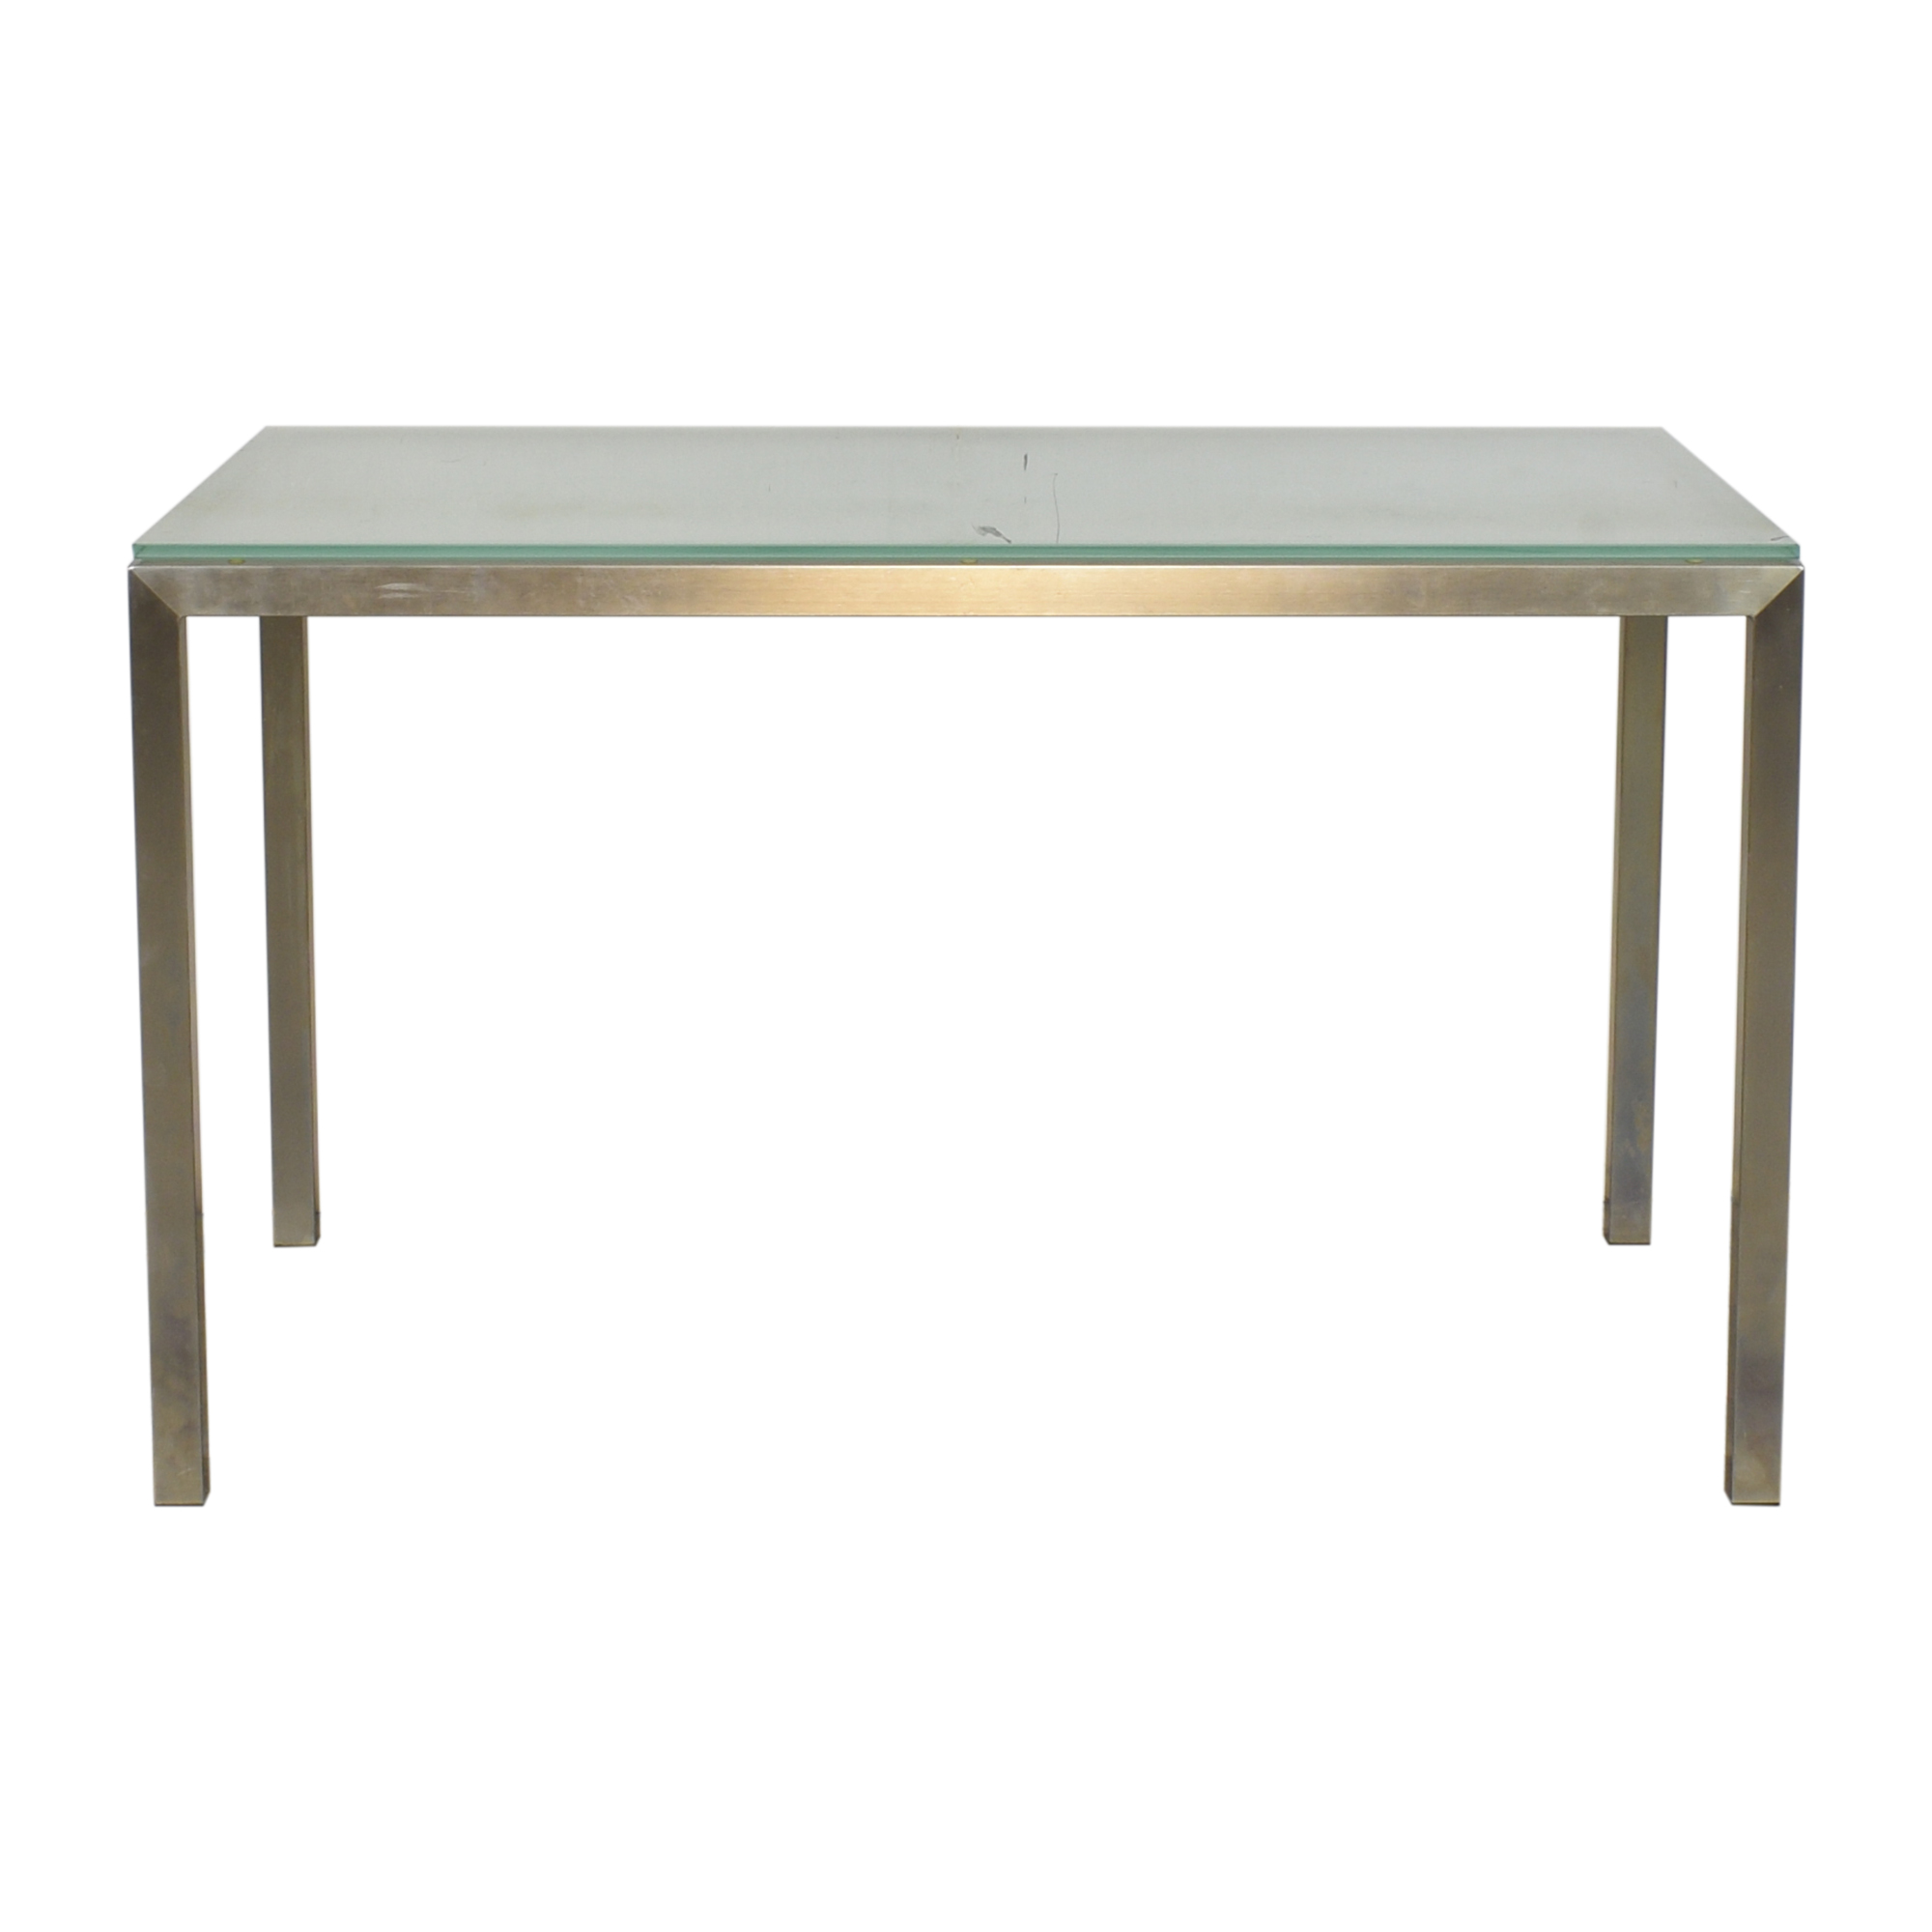 Room & Board Portica Table / Dinner Tables